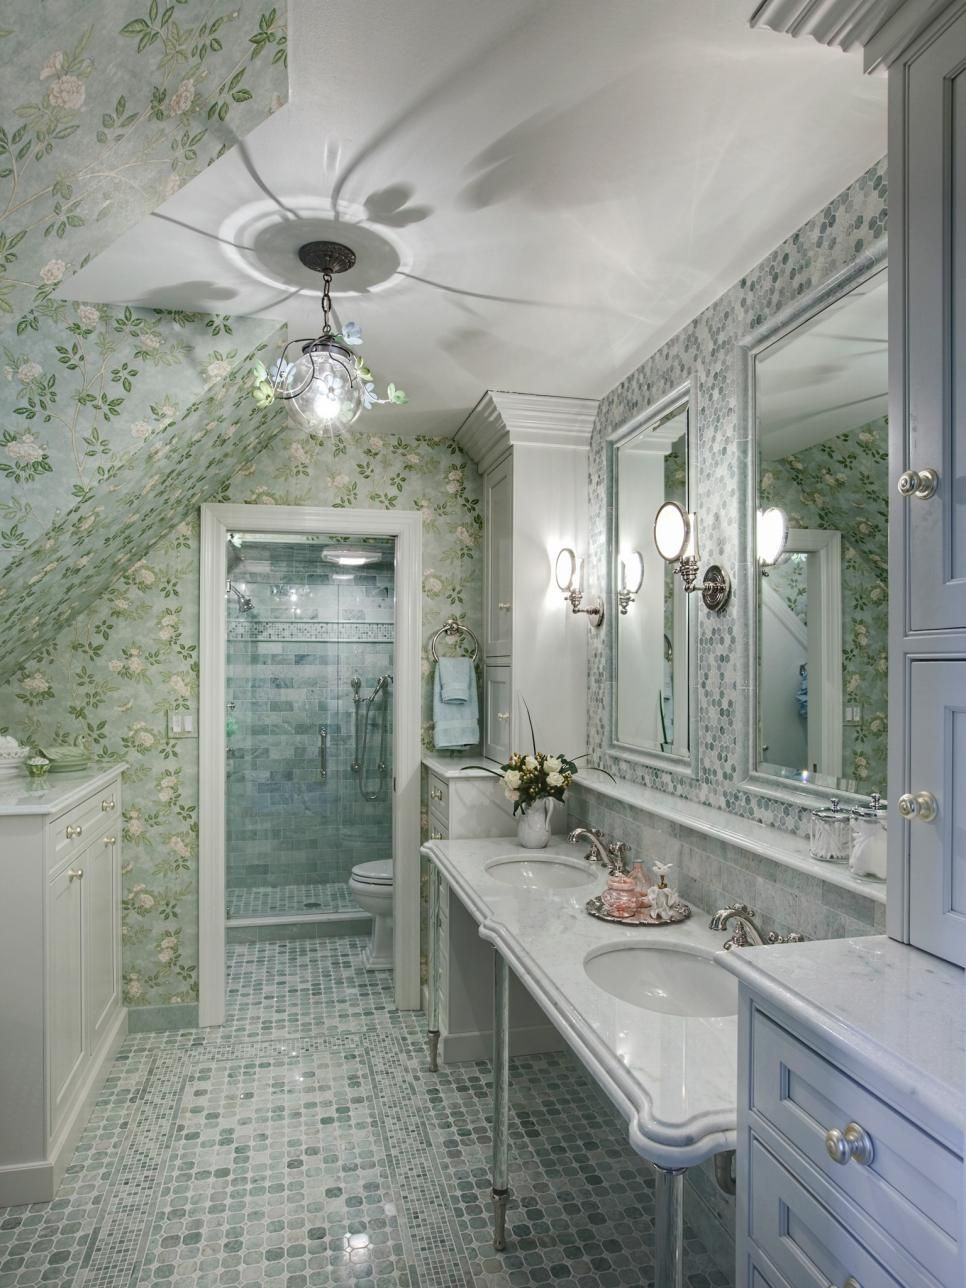 Browse Pictures Of Elegant Bathroom Lighting And Get Design Ideas On Hgtv